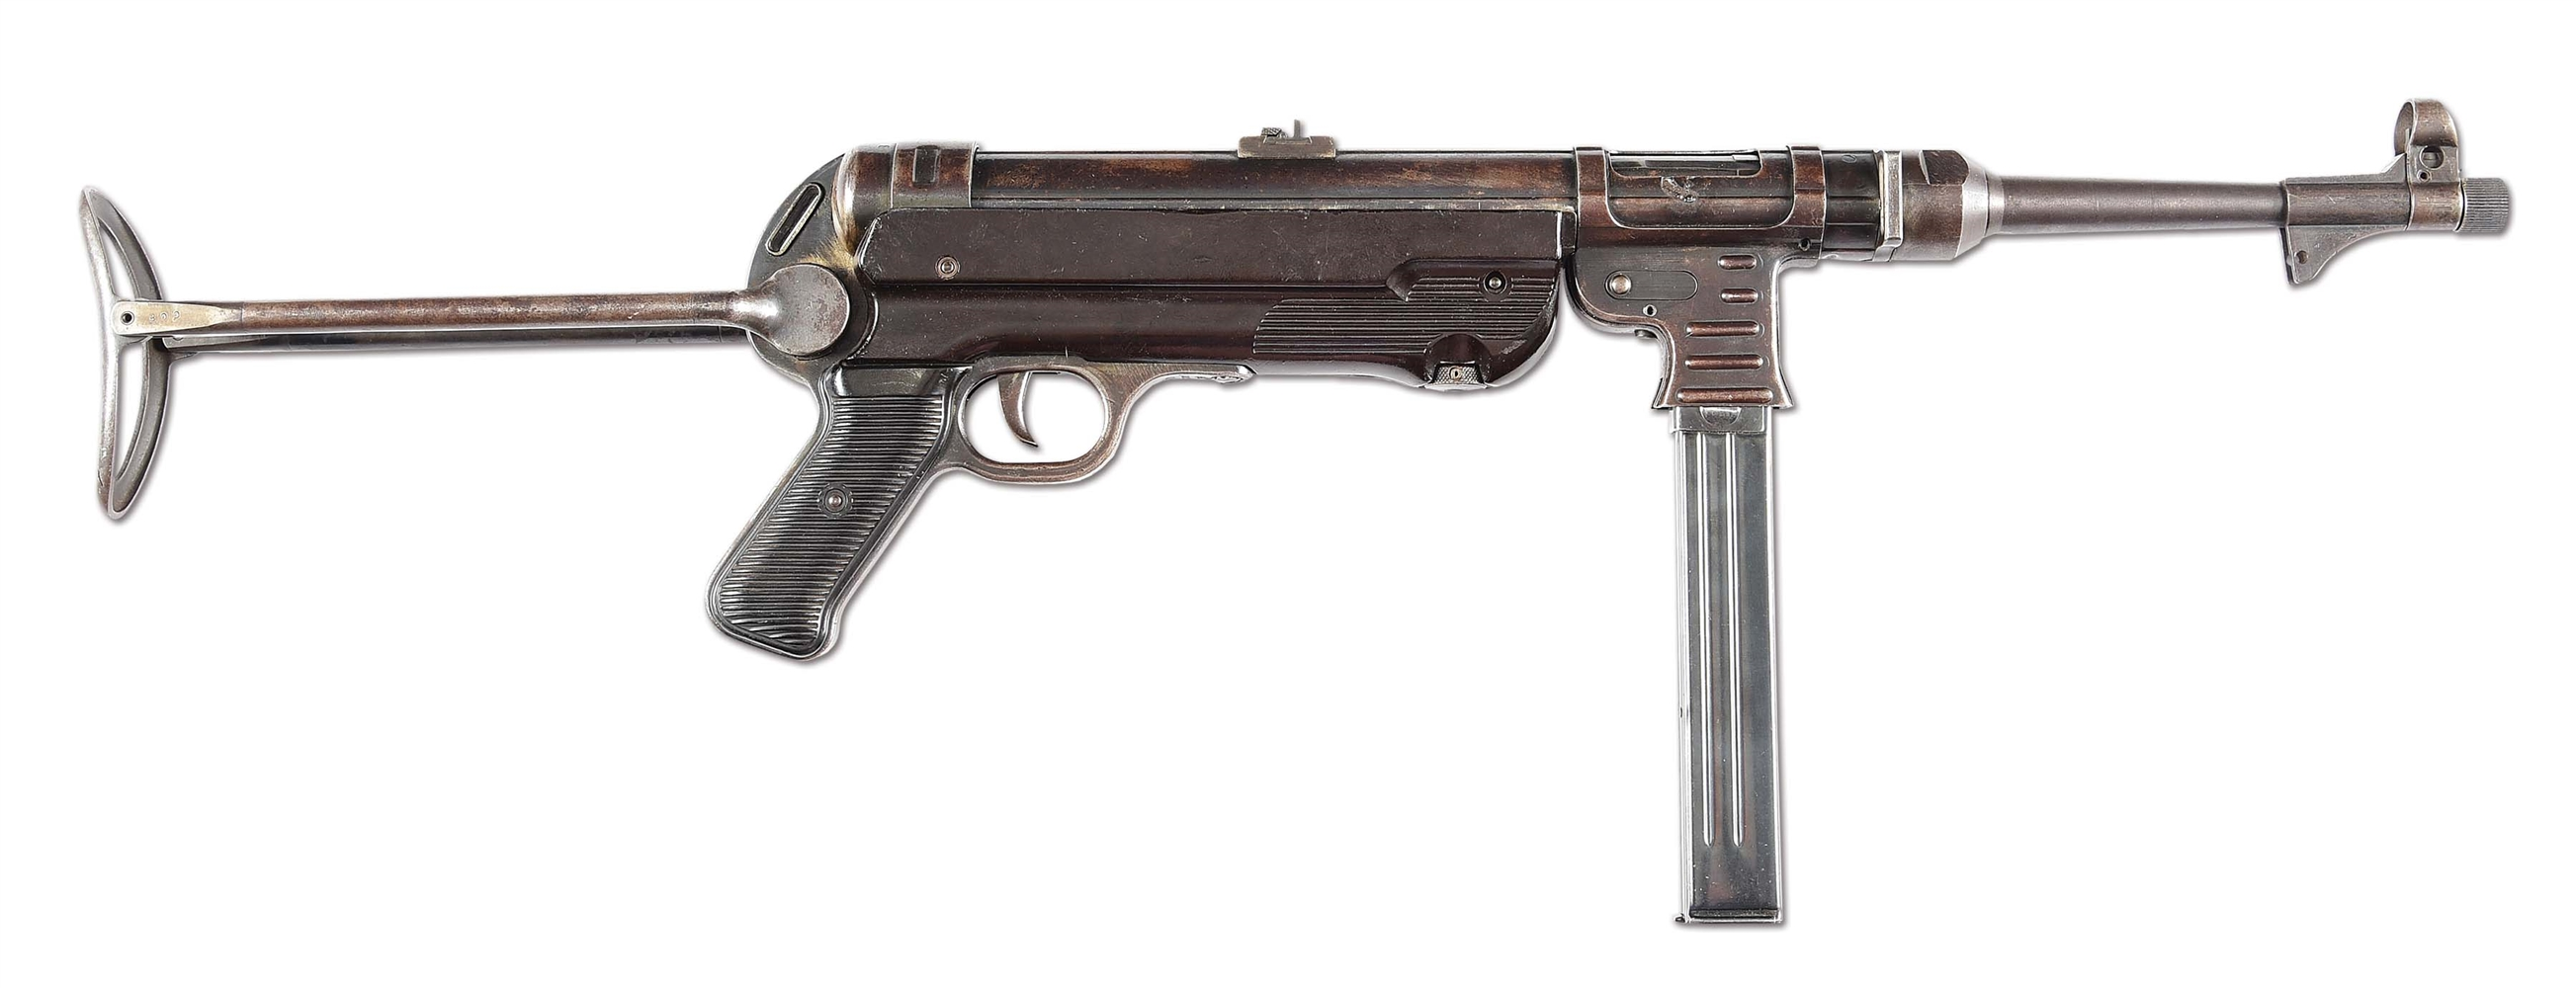 (N) HIGHLY DESIRABLE ORIGINAL MATCHING WWII GERMAN MP-40 MACHINE GUN (CURIO & RELIC).